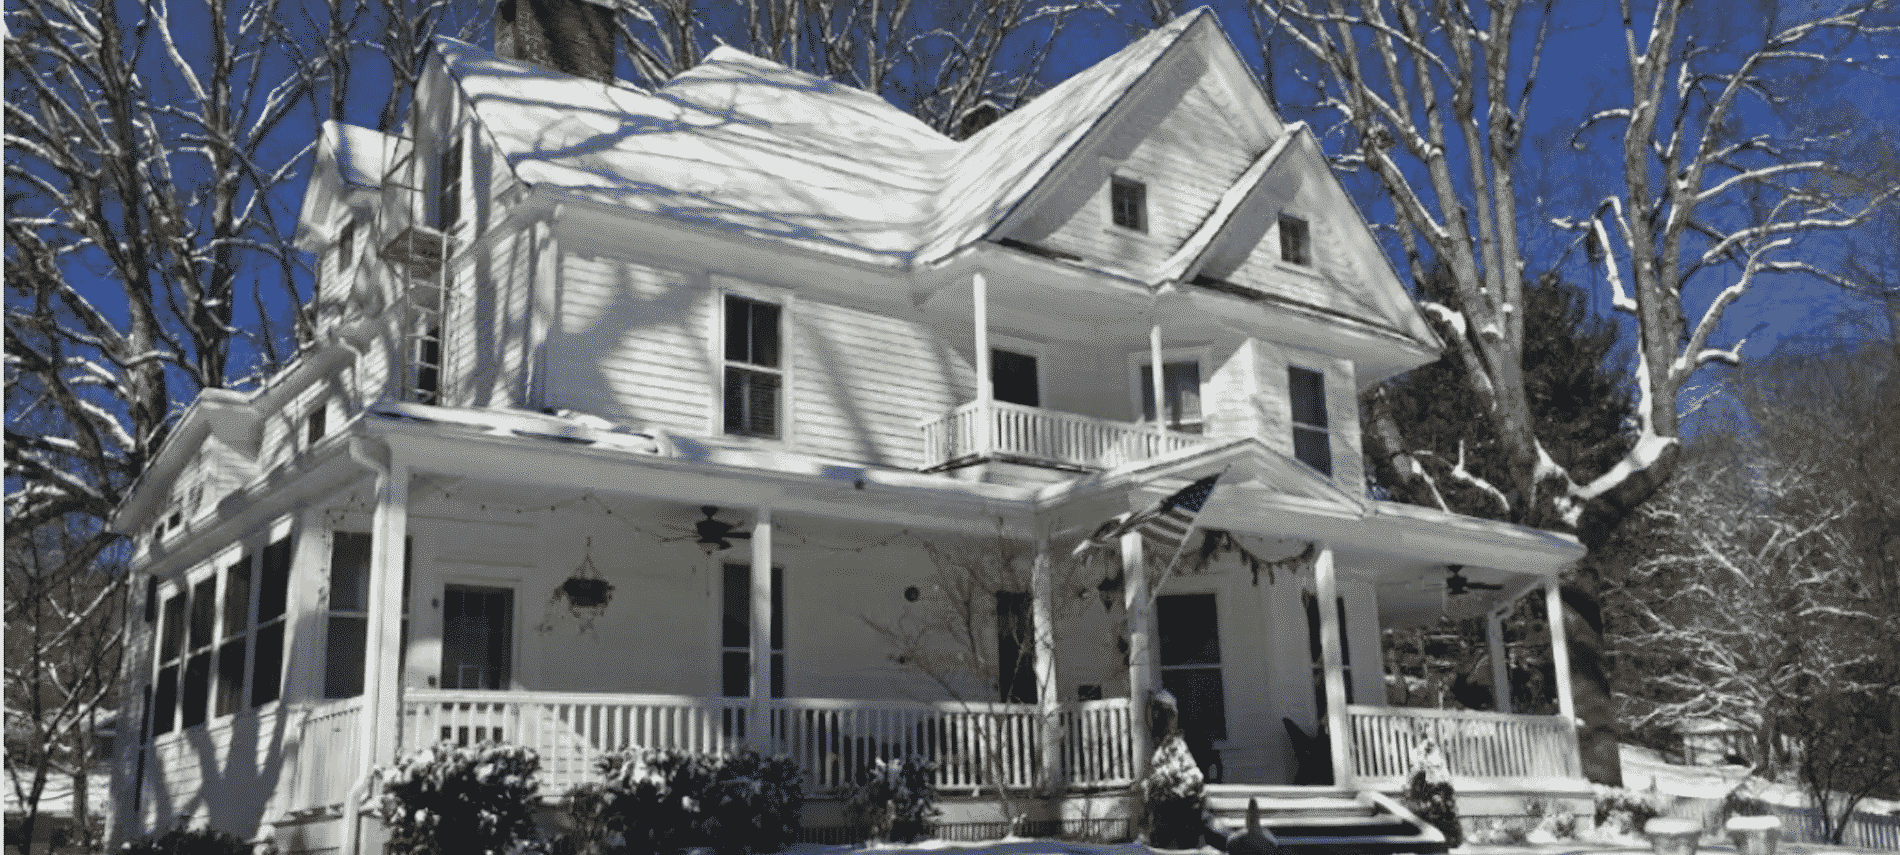 Exterior front view of Oak Hill on Love Lane, white traditional two-story home topped with fresh snow